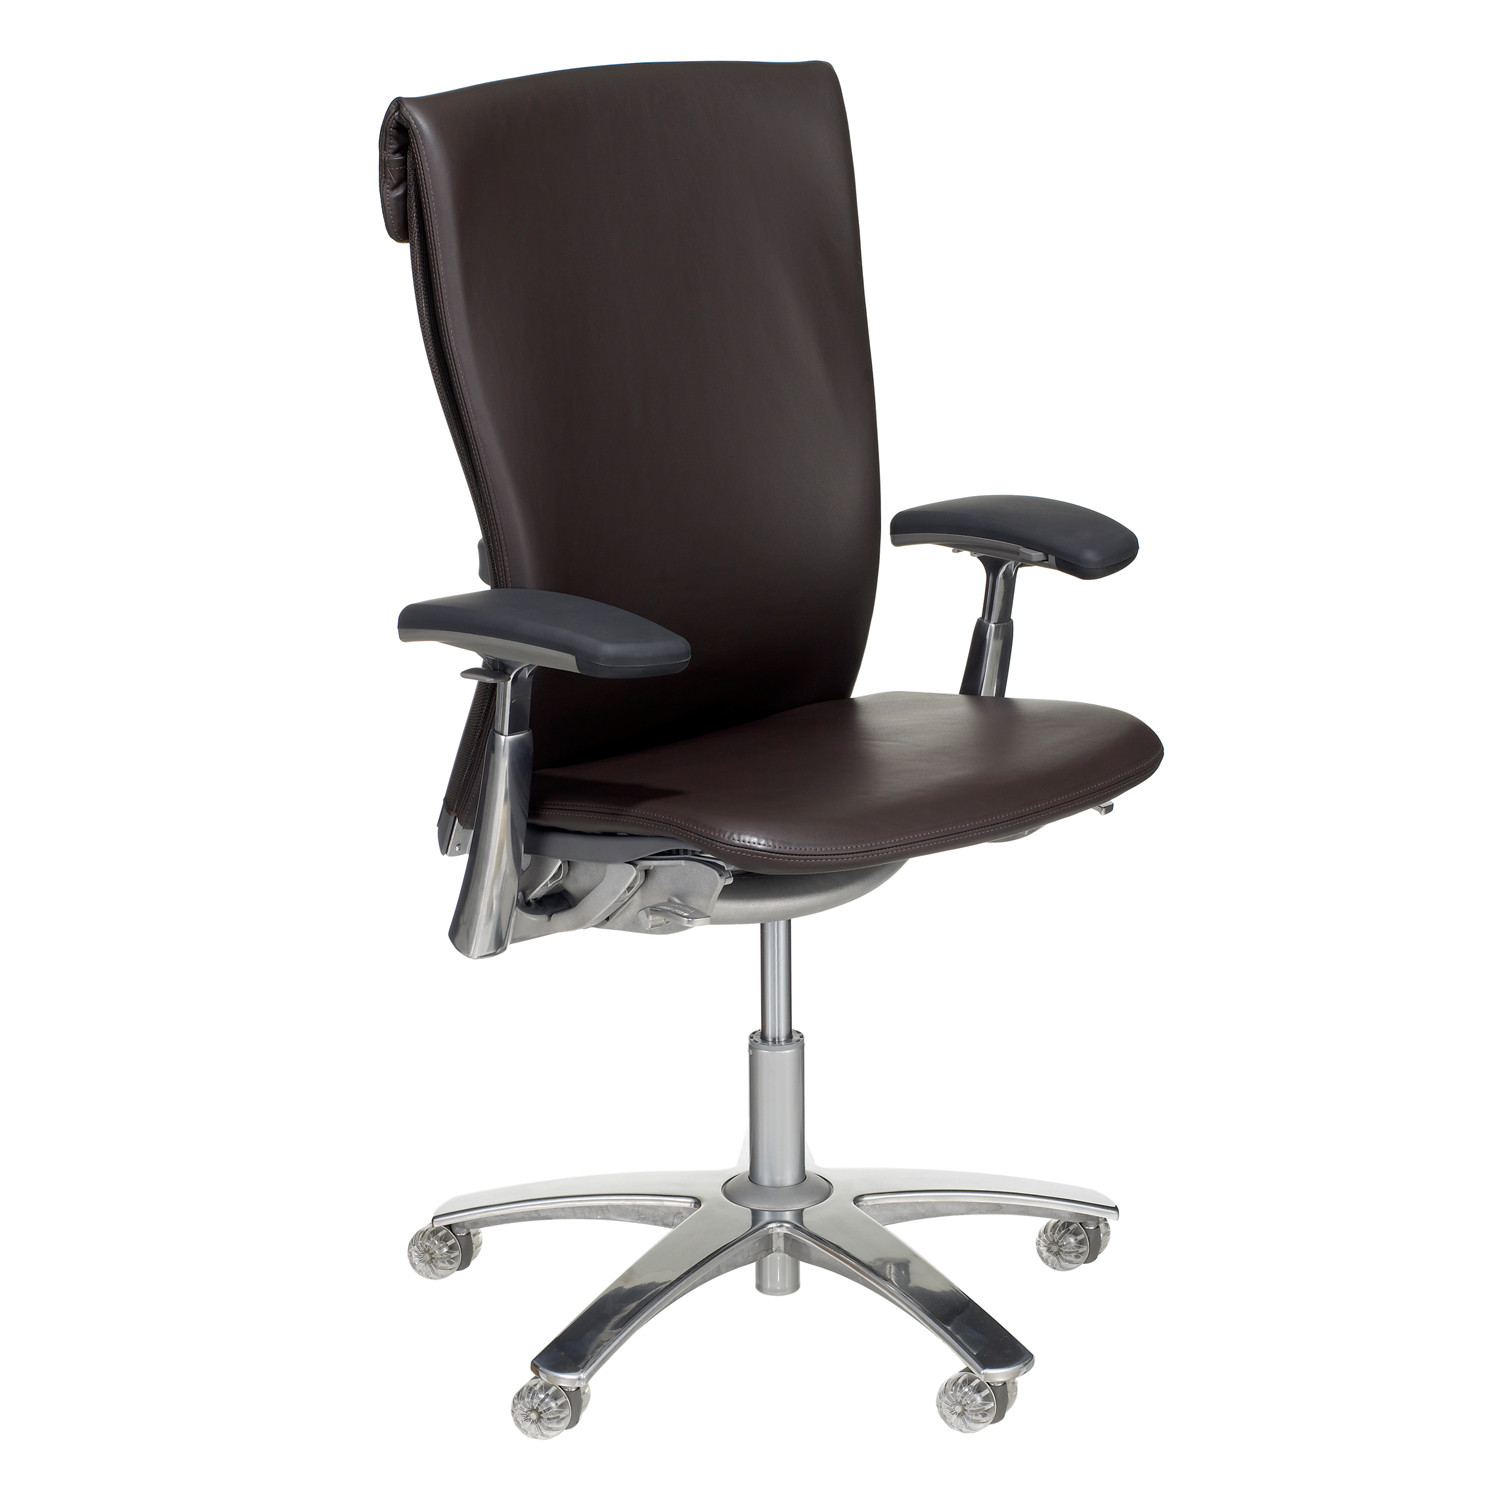 modern products fur tiffany fcrm office to chair product up make boss cream bosschair